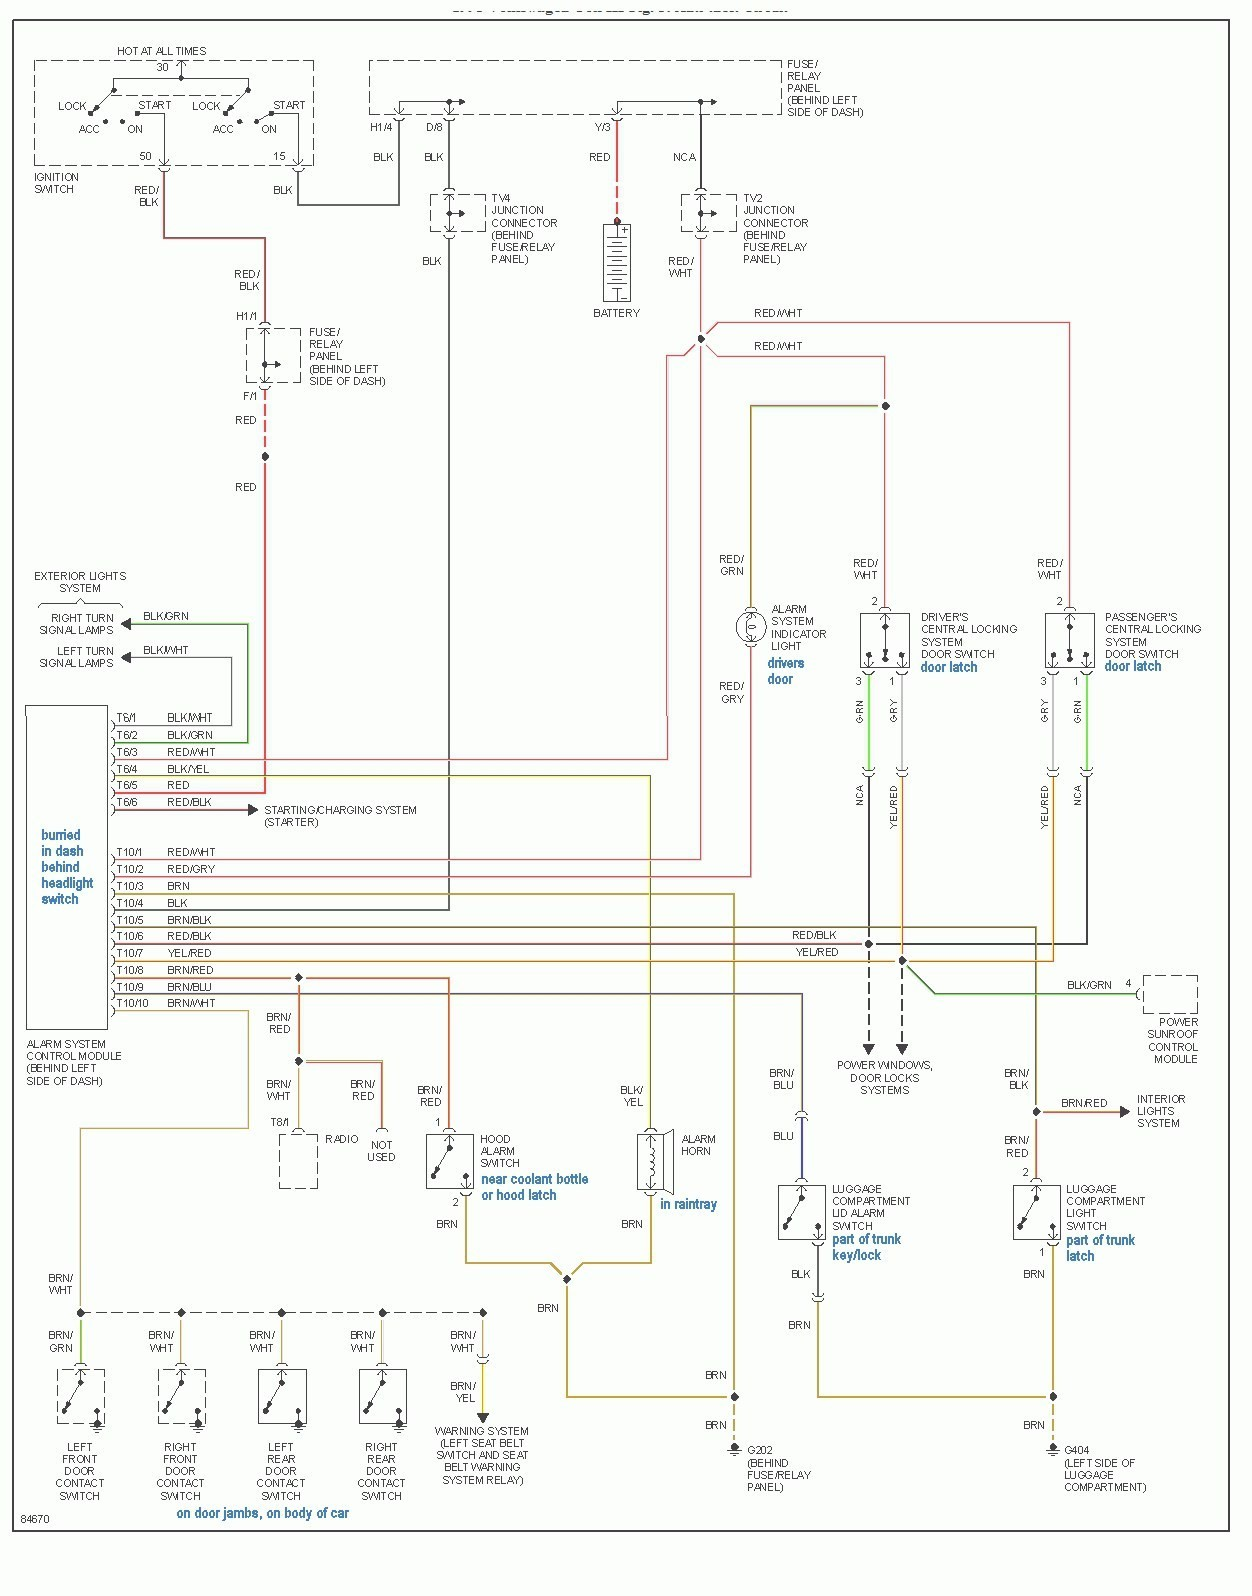 DIAGRAM] 2001 Volkswagen Jetta Wiring Diagram FULL Version HD Quality Wiring  Diagram - MATE-DIAGRAM.RADD.FRDiagram Database - Radd